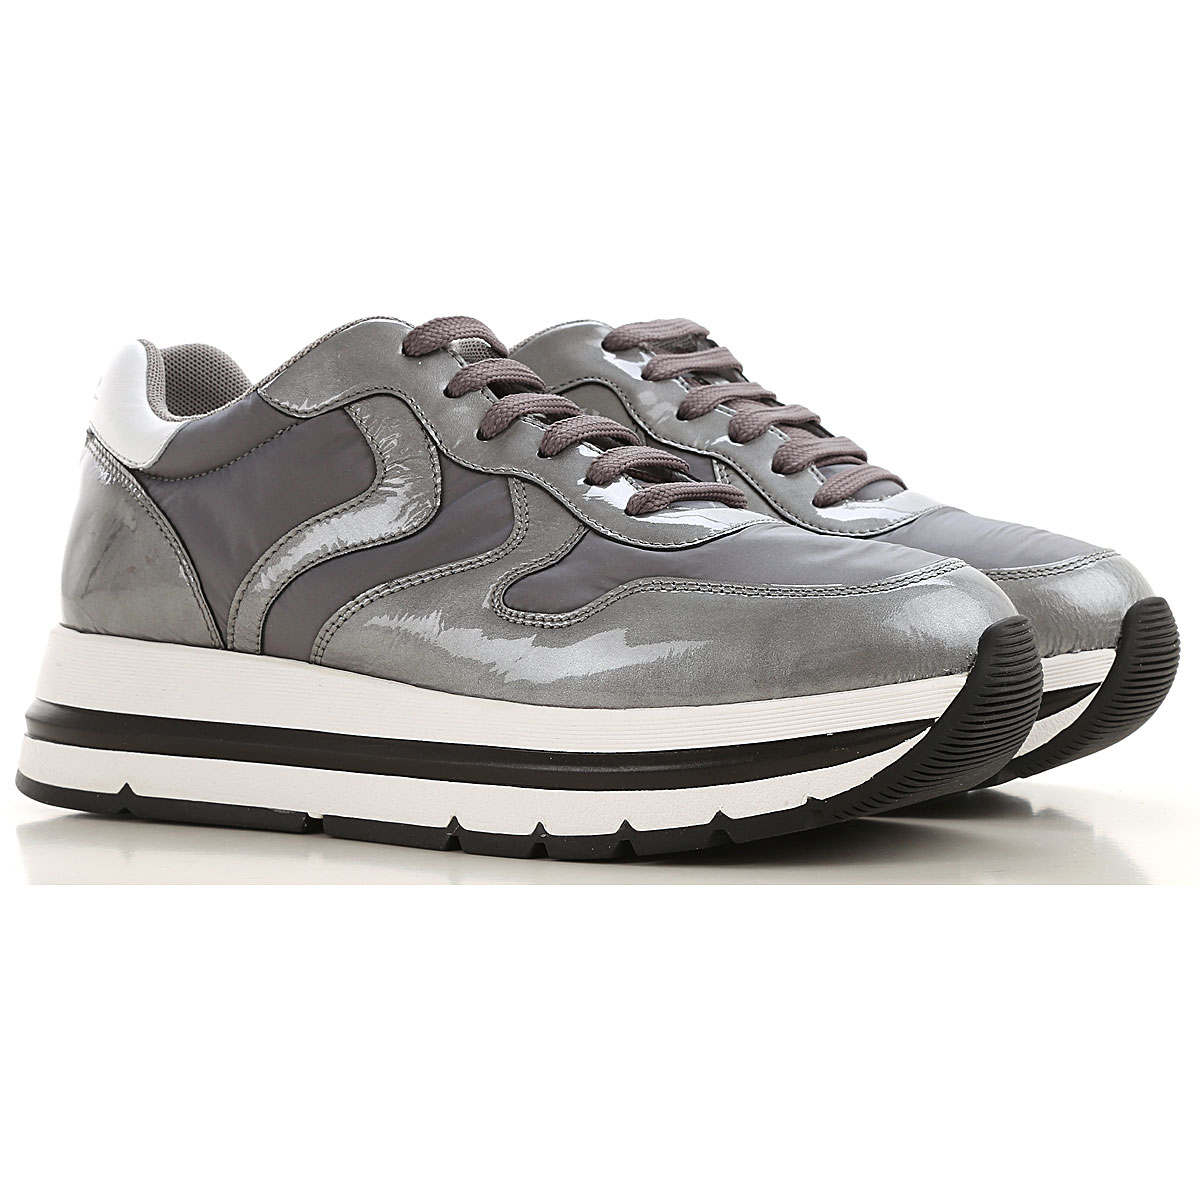 Voile Blanche Sneakers for Women On Sale, Anthracite, Leather, 2019, 7 8 9